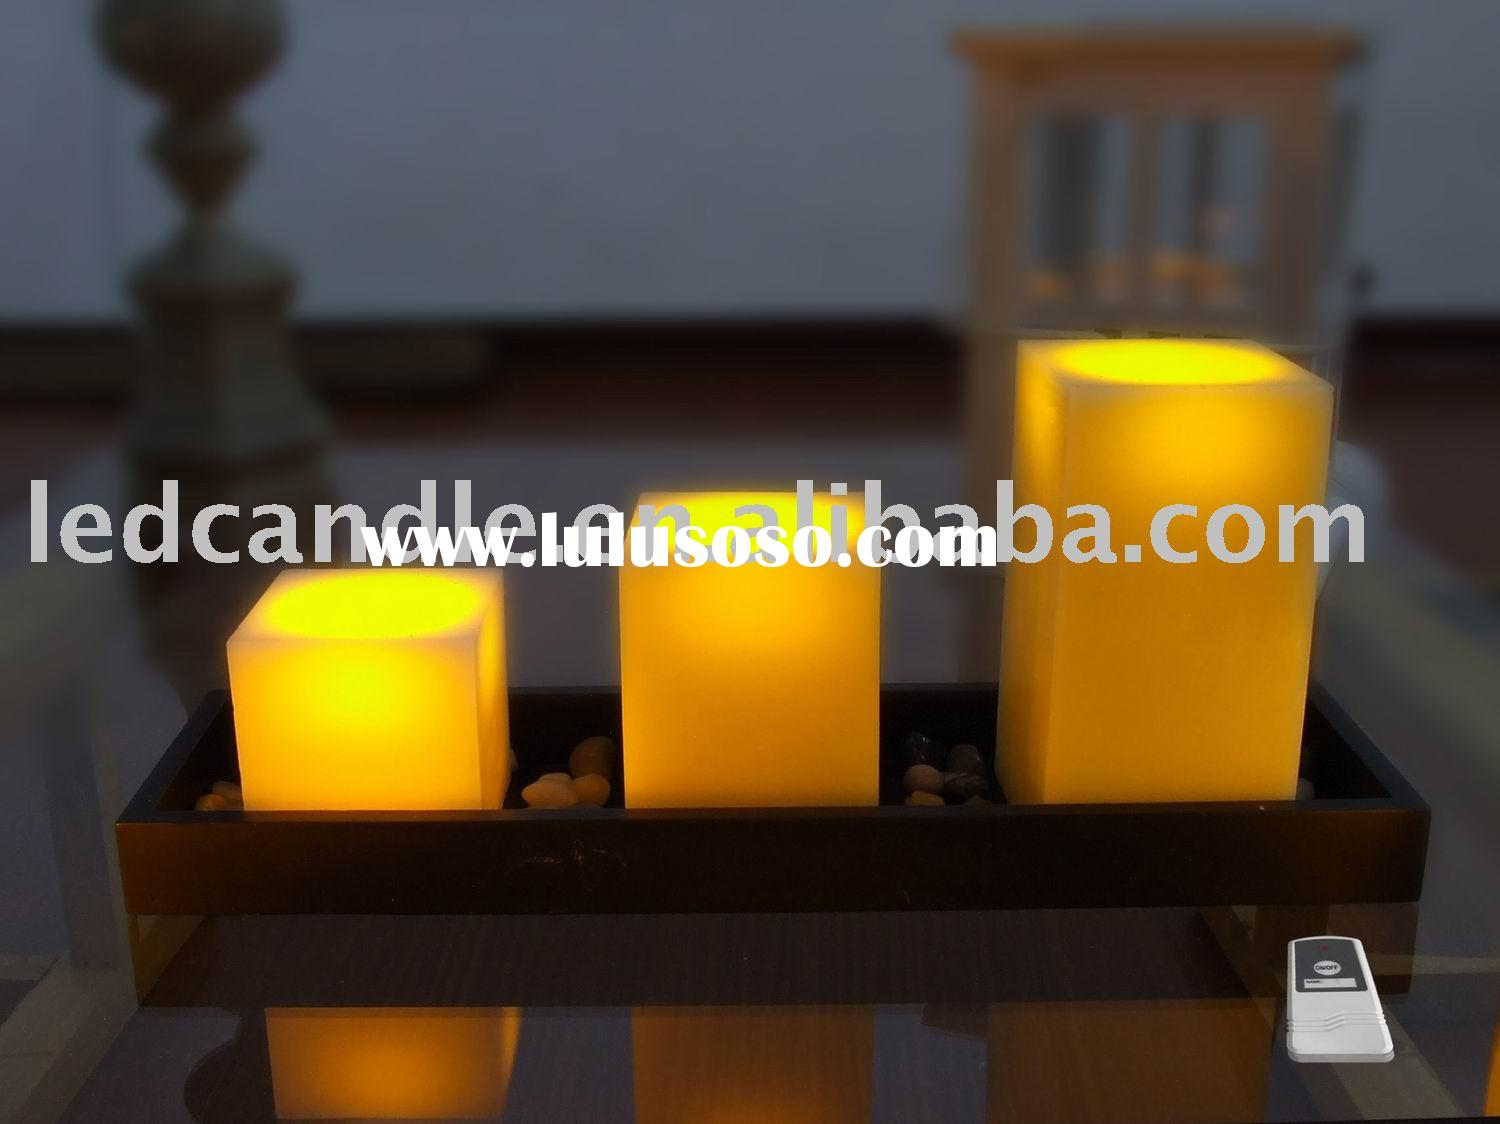 remote Control led candle set, night light